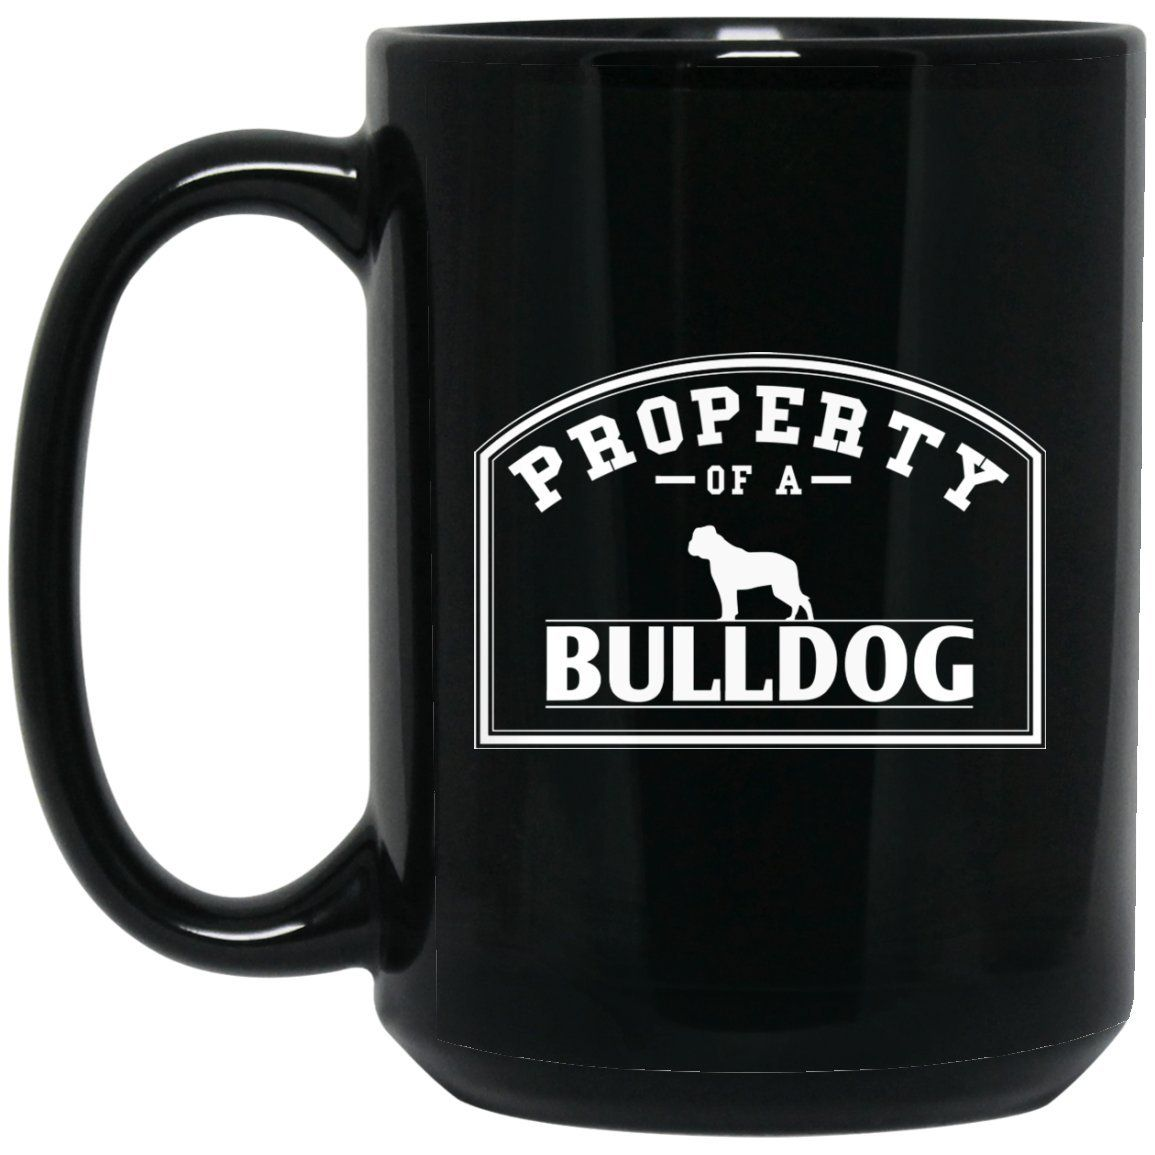 Funny Bulldog Mug - Property of A Bulldog Frame Large Black Mug #funnybulldog